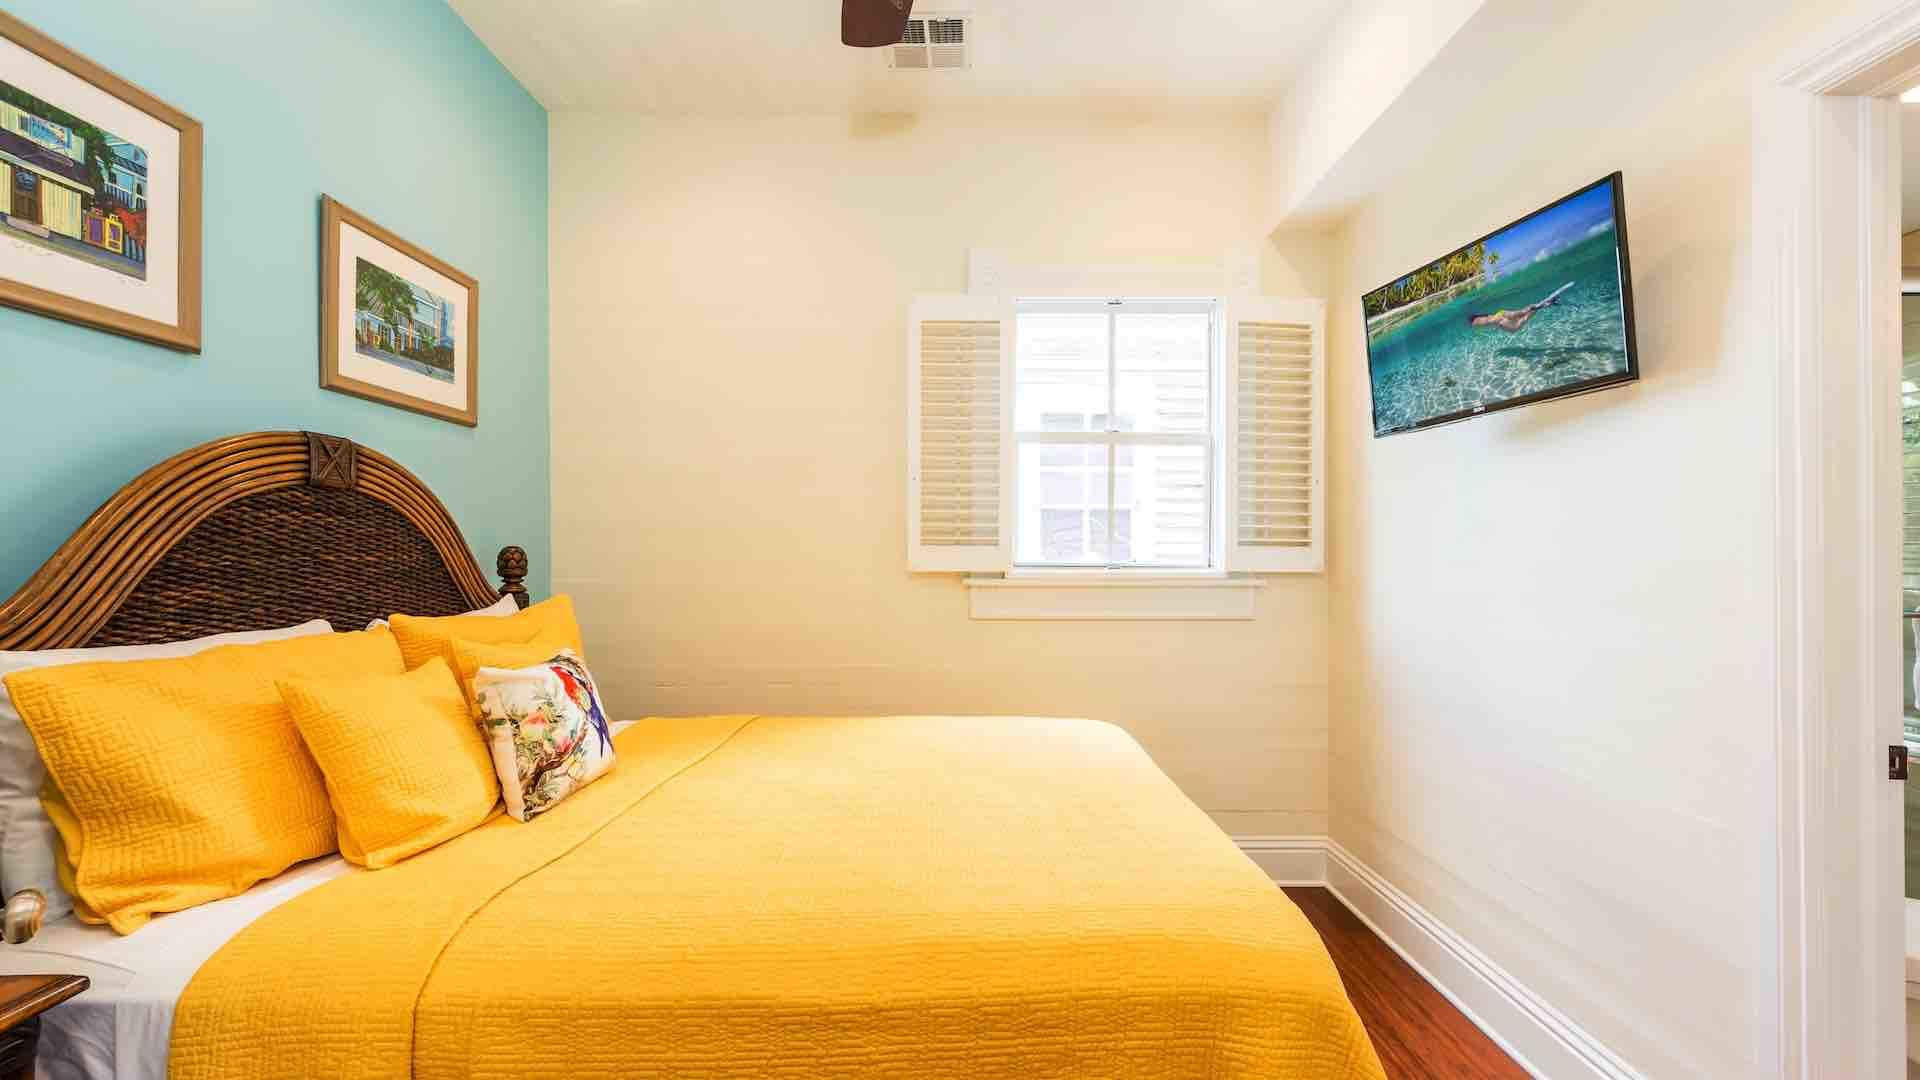 The master bedroom has a Queen bed, an overhead fan, and a flat screen TV...